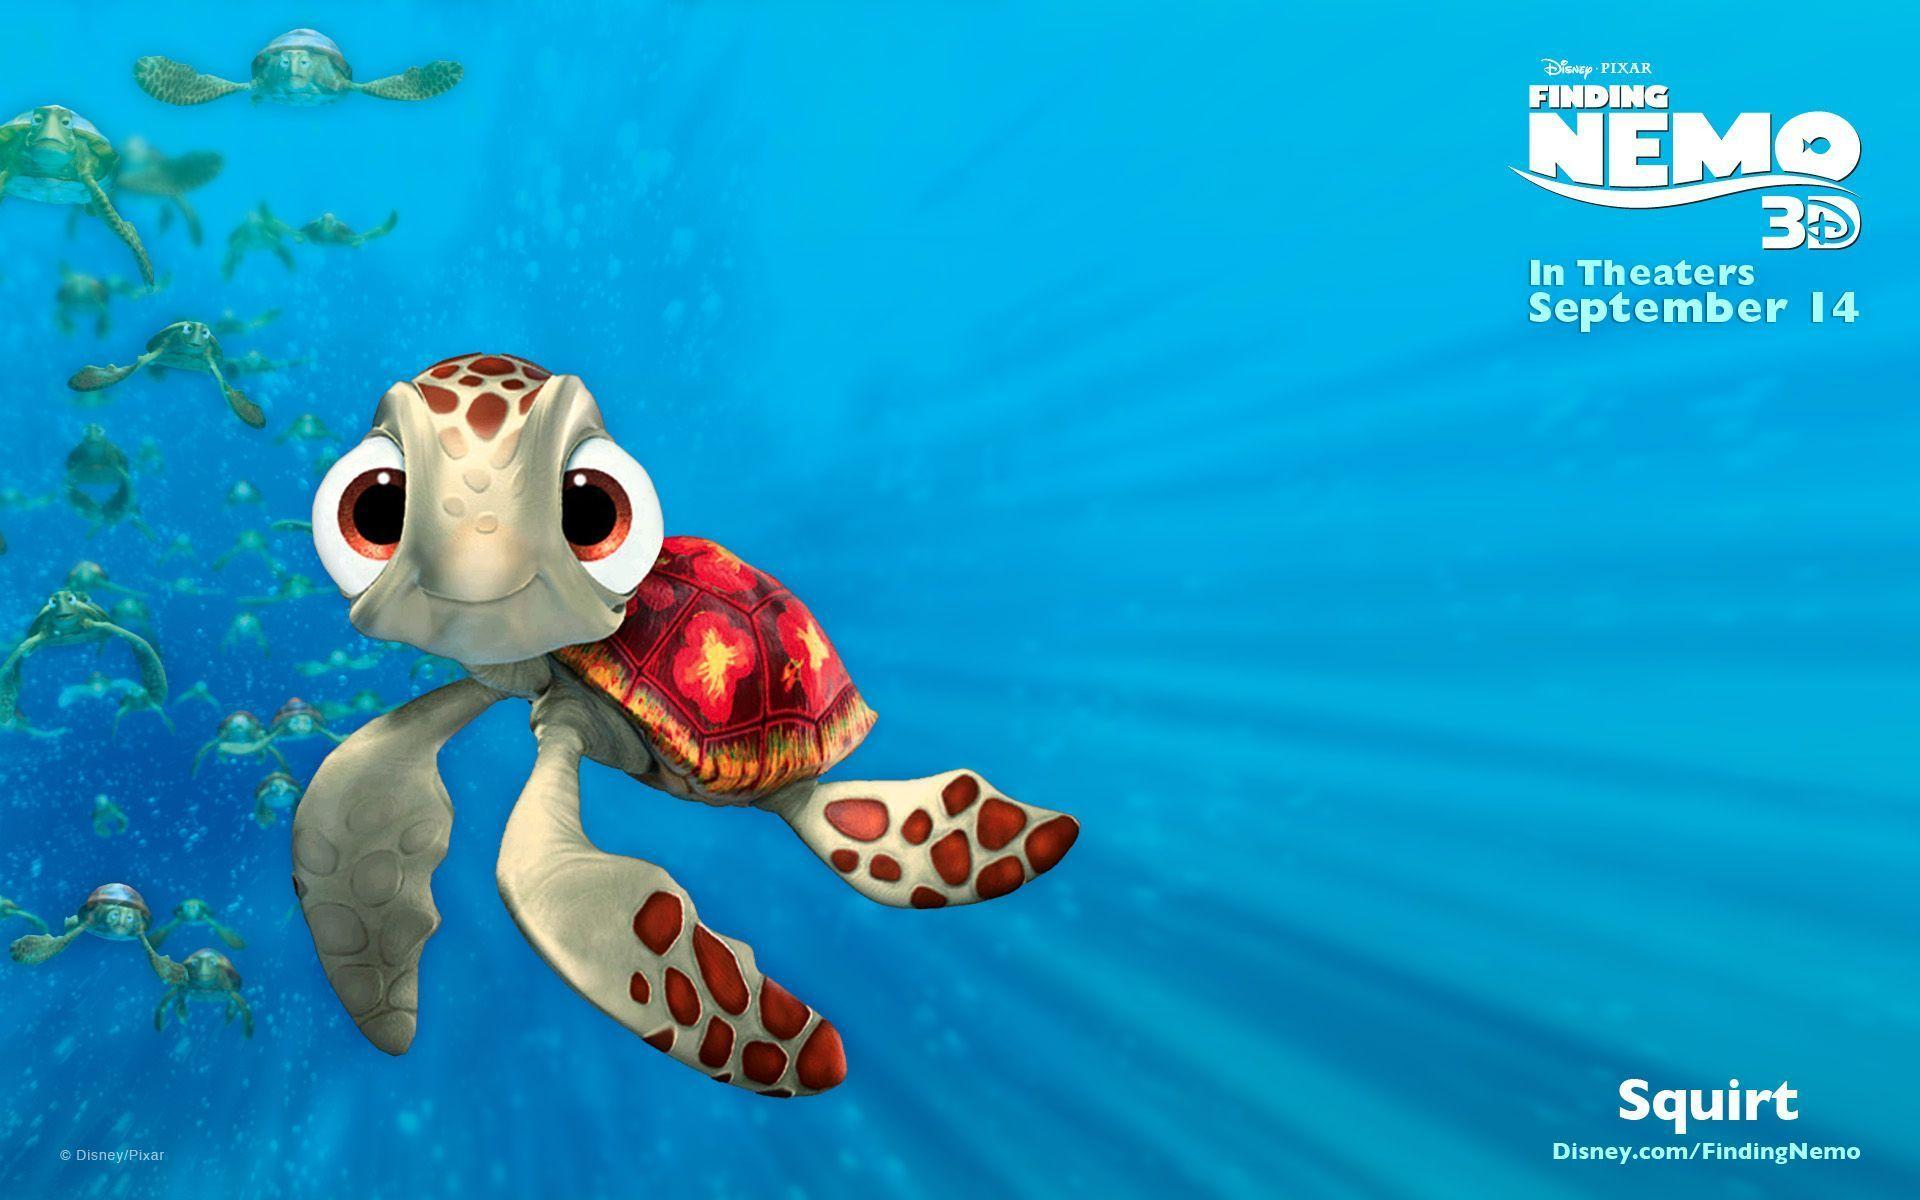 Image For > Finding Nemo Wallpapers 3d